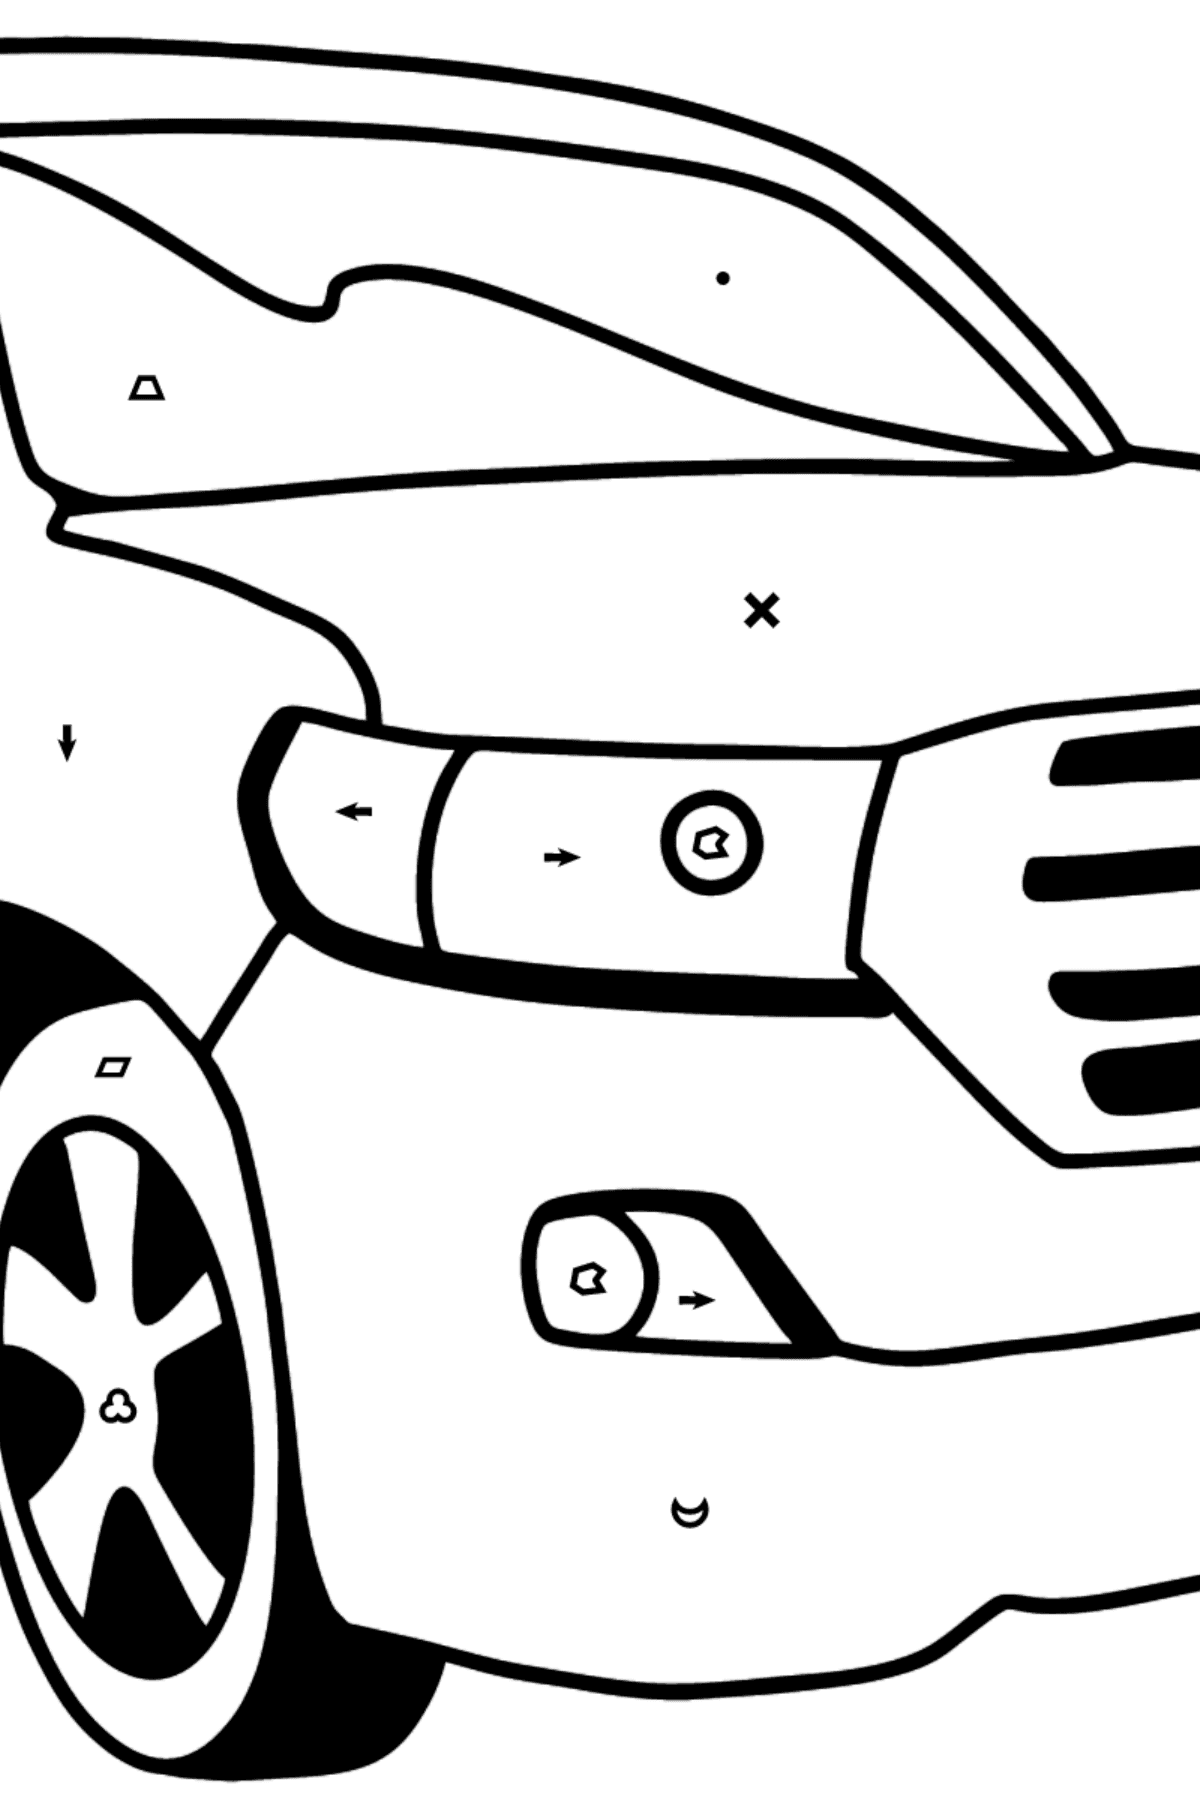 Toyota Land Cruiser Car coloring page - Coloring by Symbols and Geometric Shapes for Kids